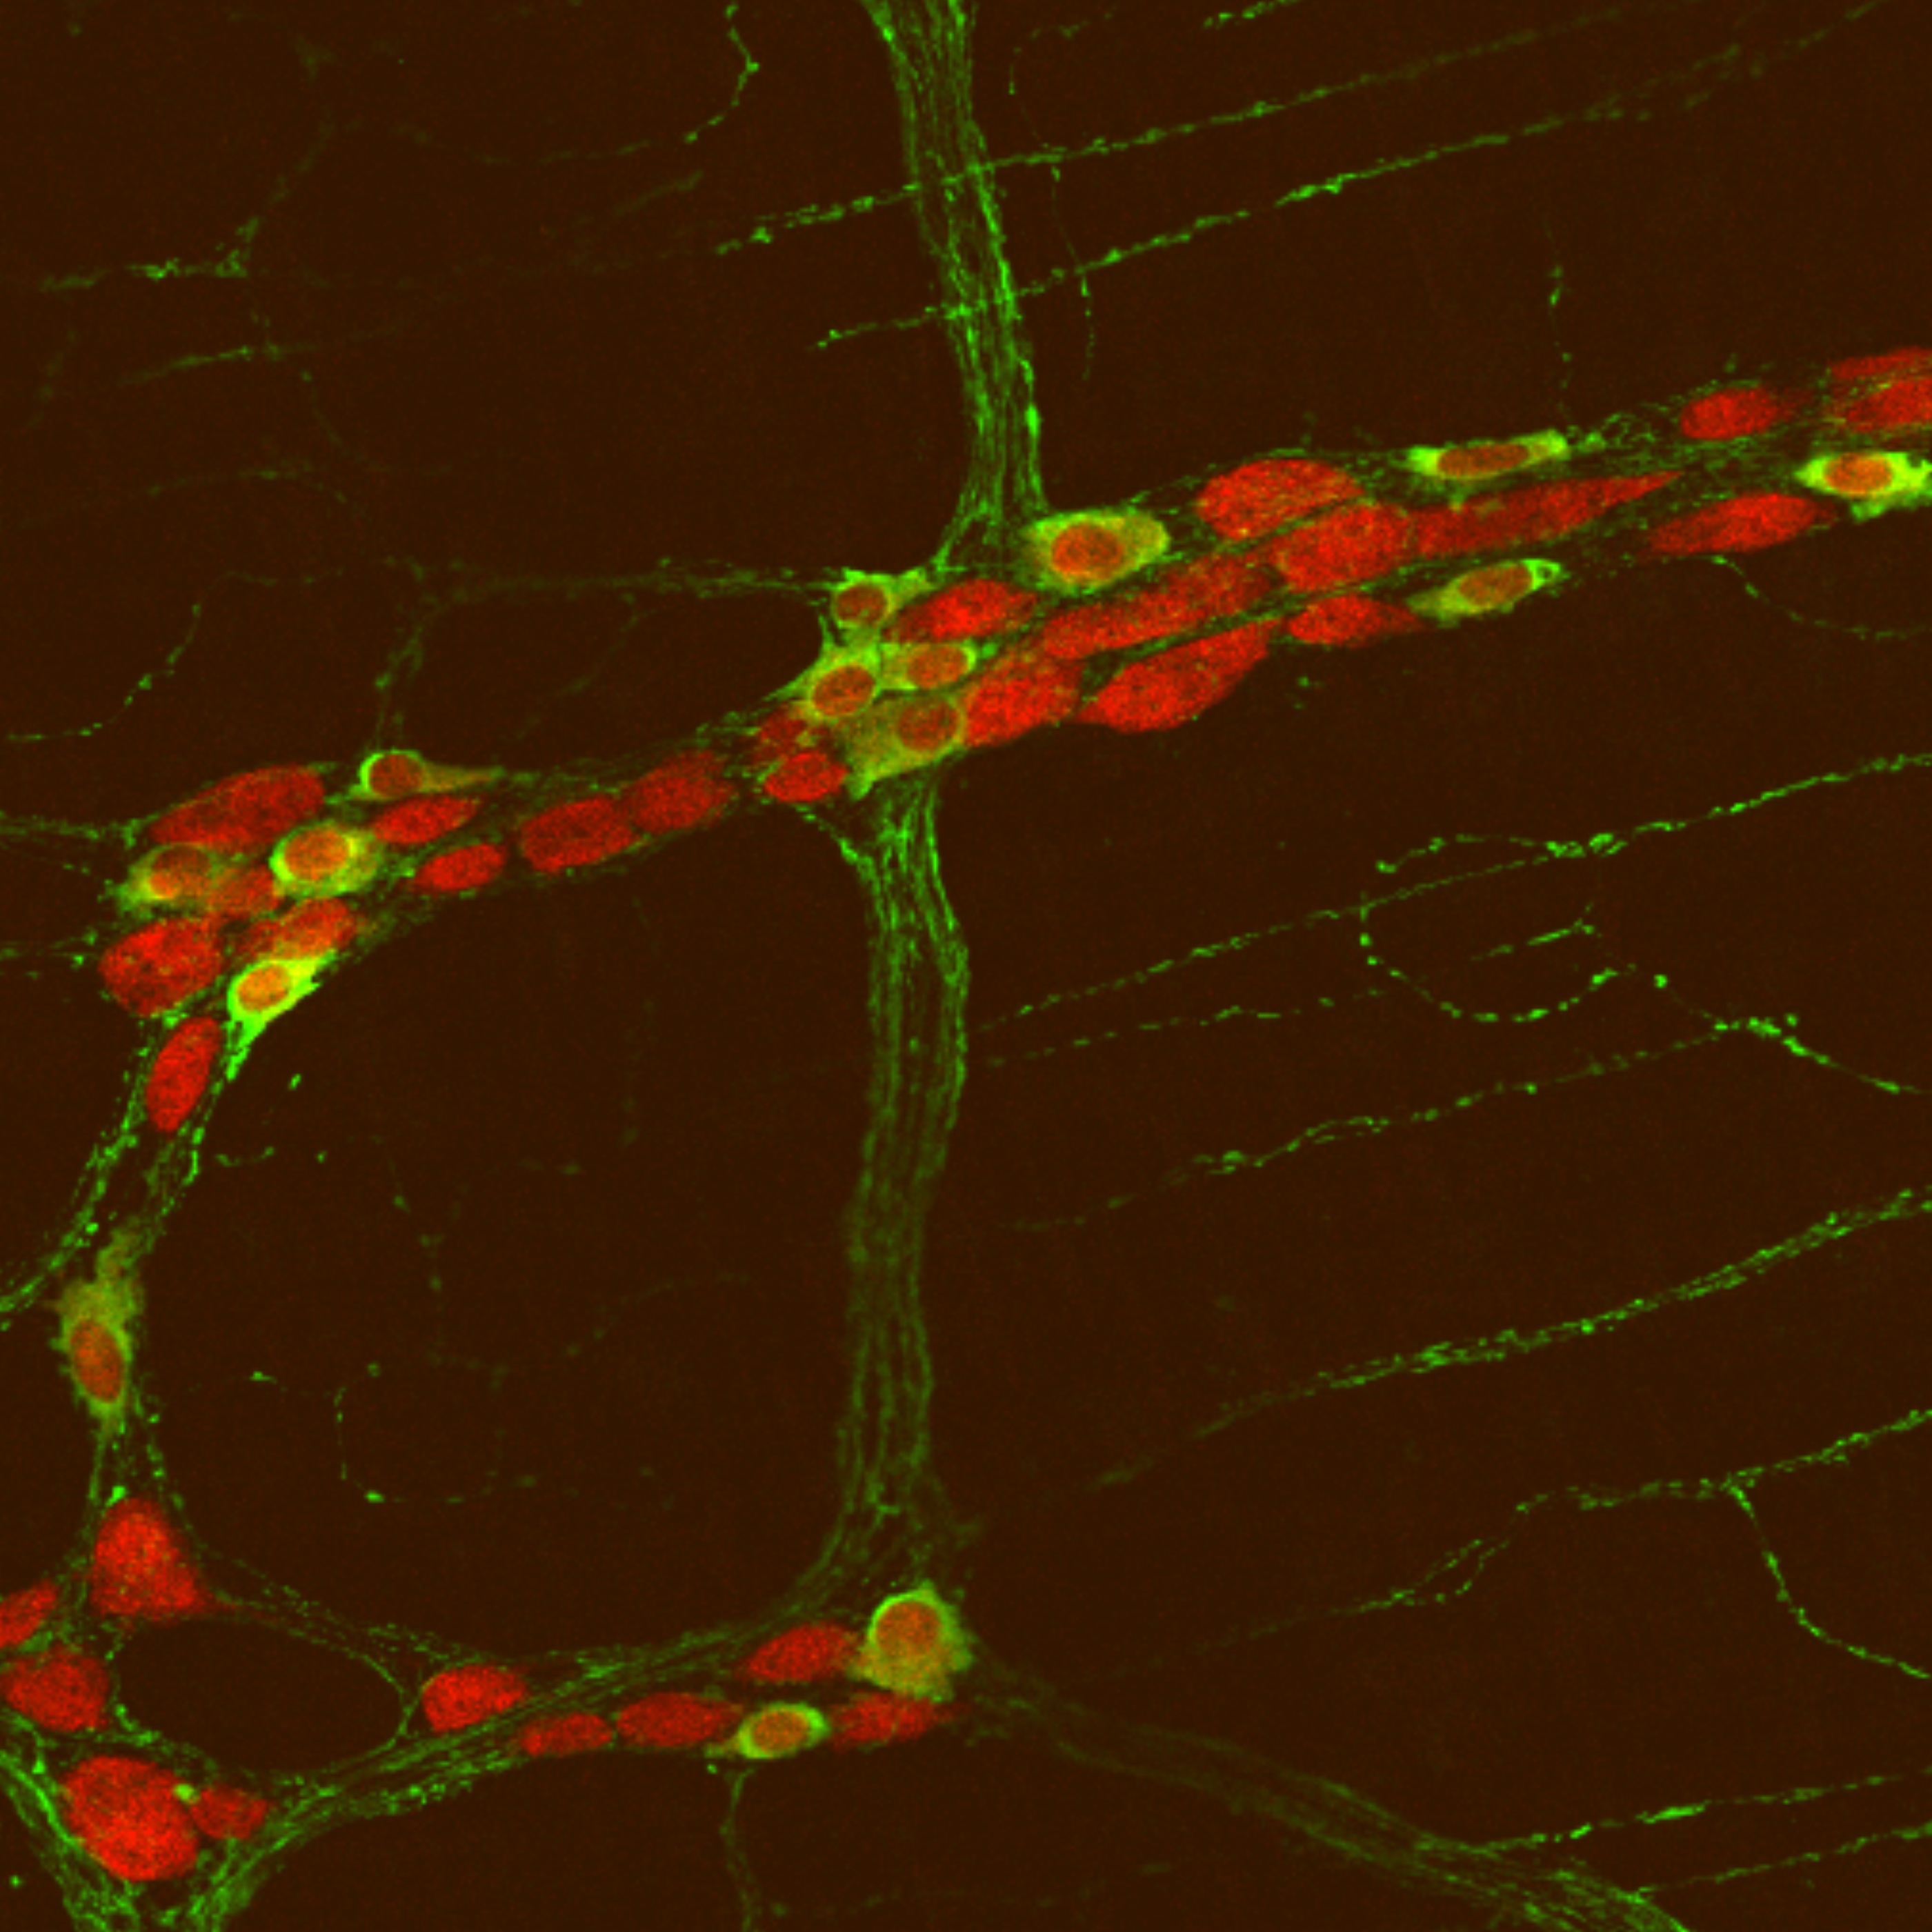 An image showing neurons in the gut of a mouse with the autism-related gene mutation. The study found mice with the mutation had more neurons in the small intestine.